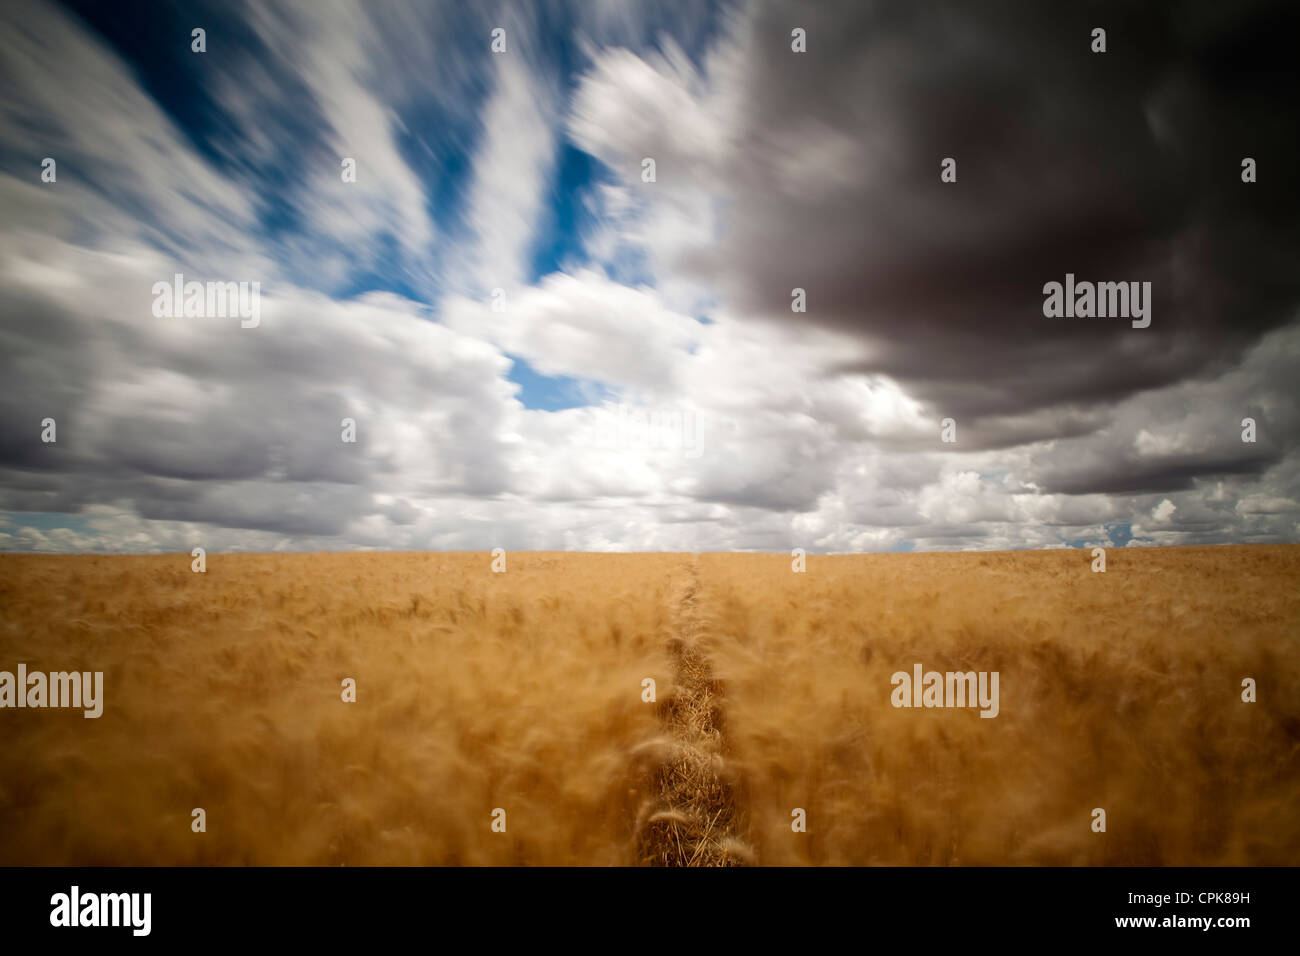 Wheat field on a windy day. Long exposure shot. - Stock Image